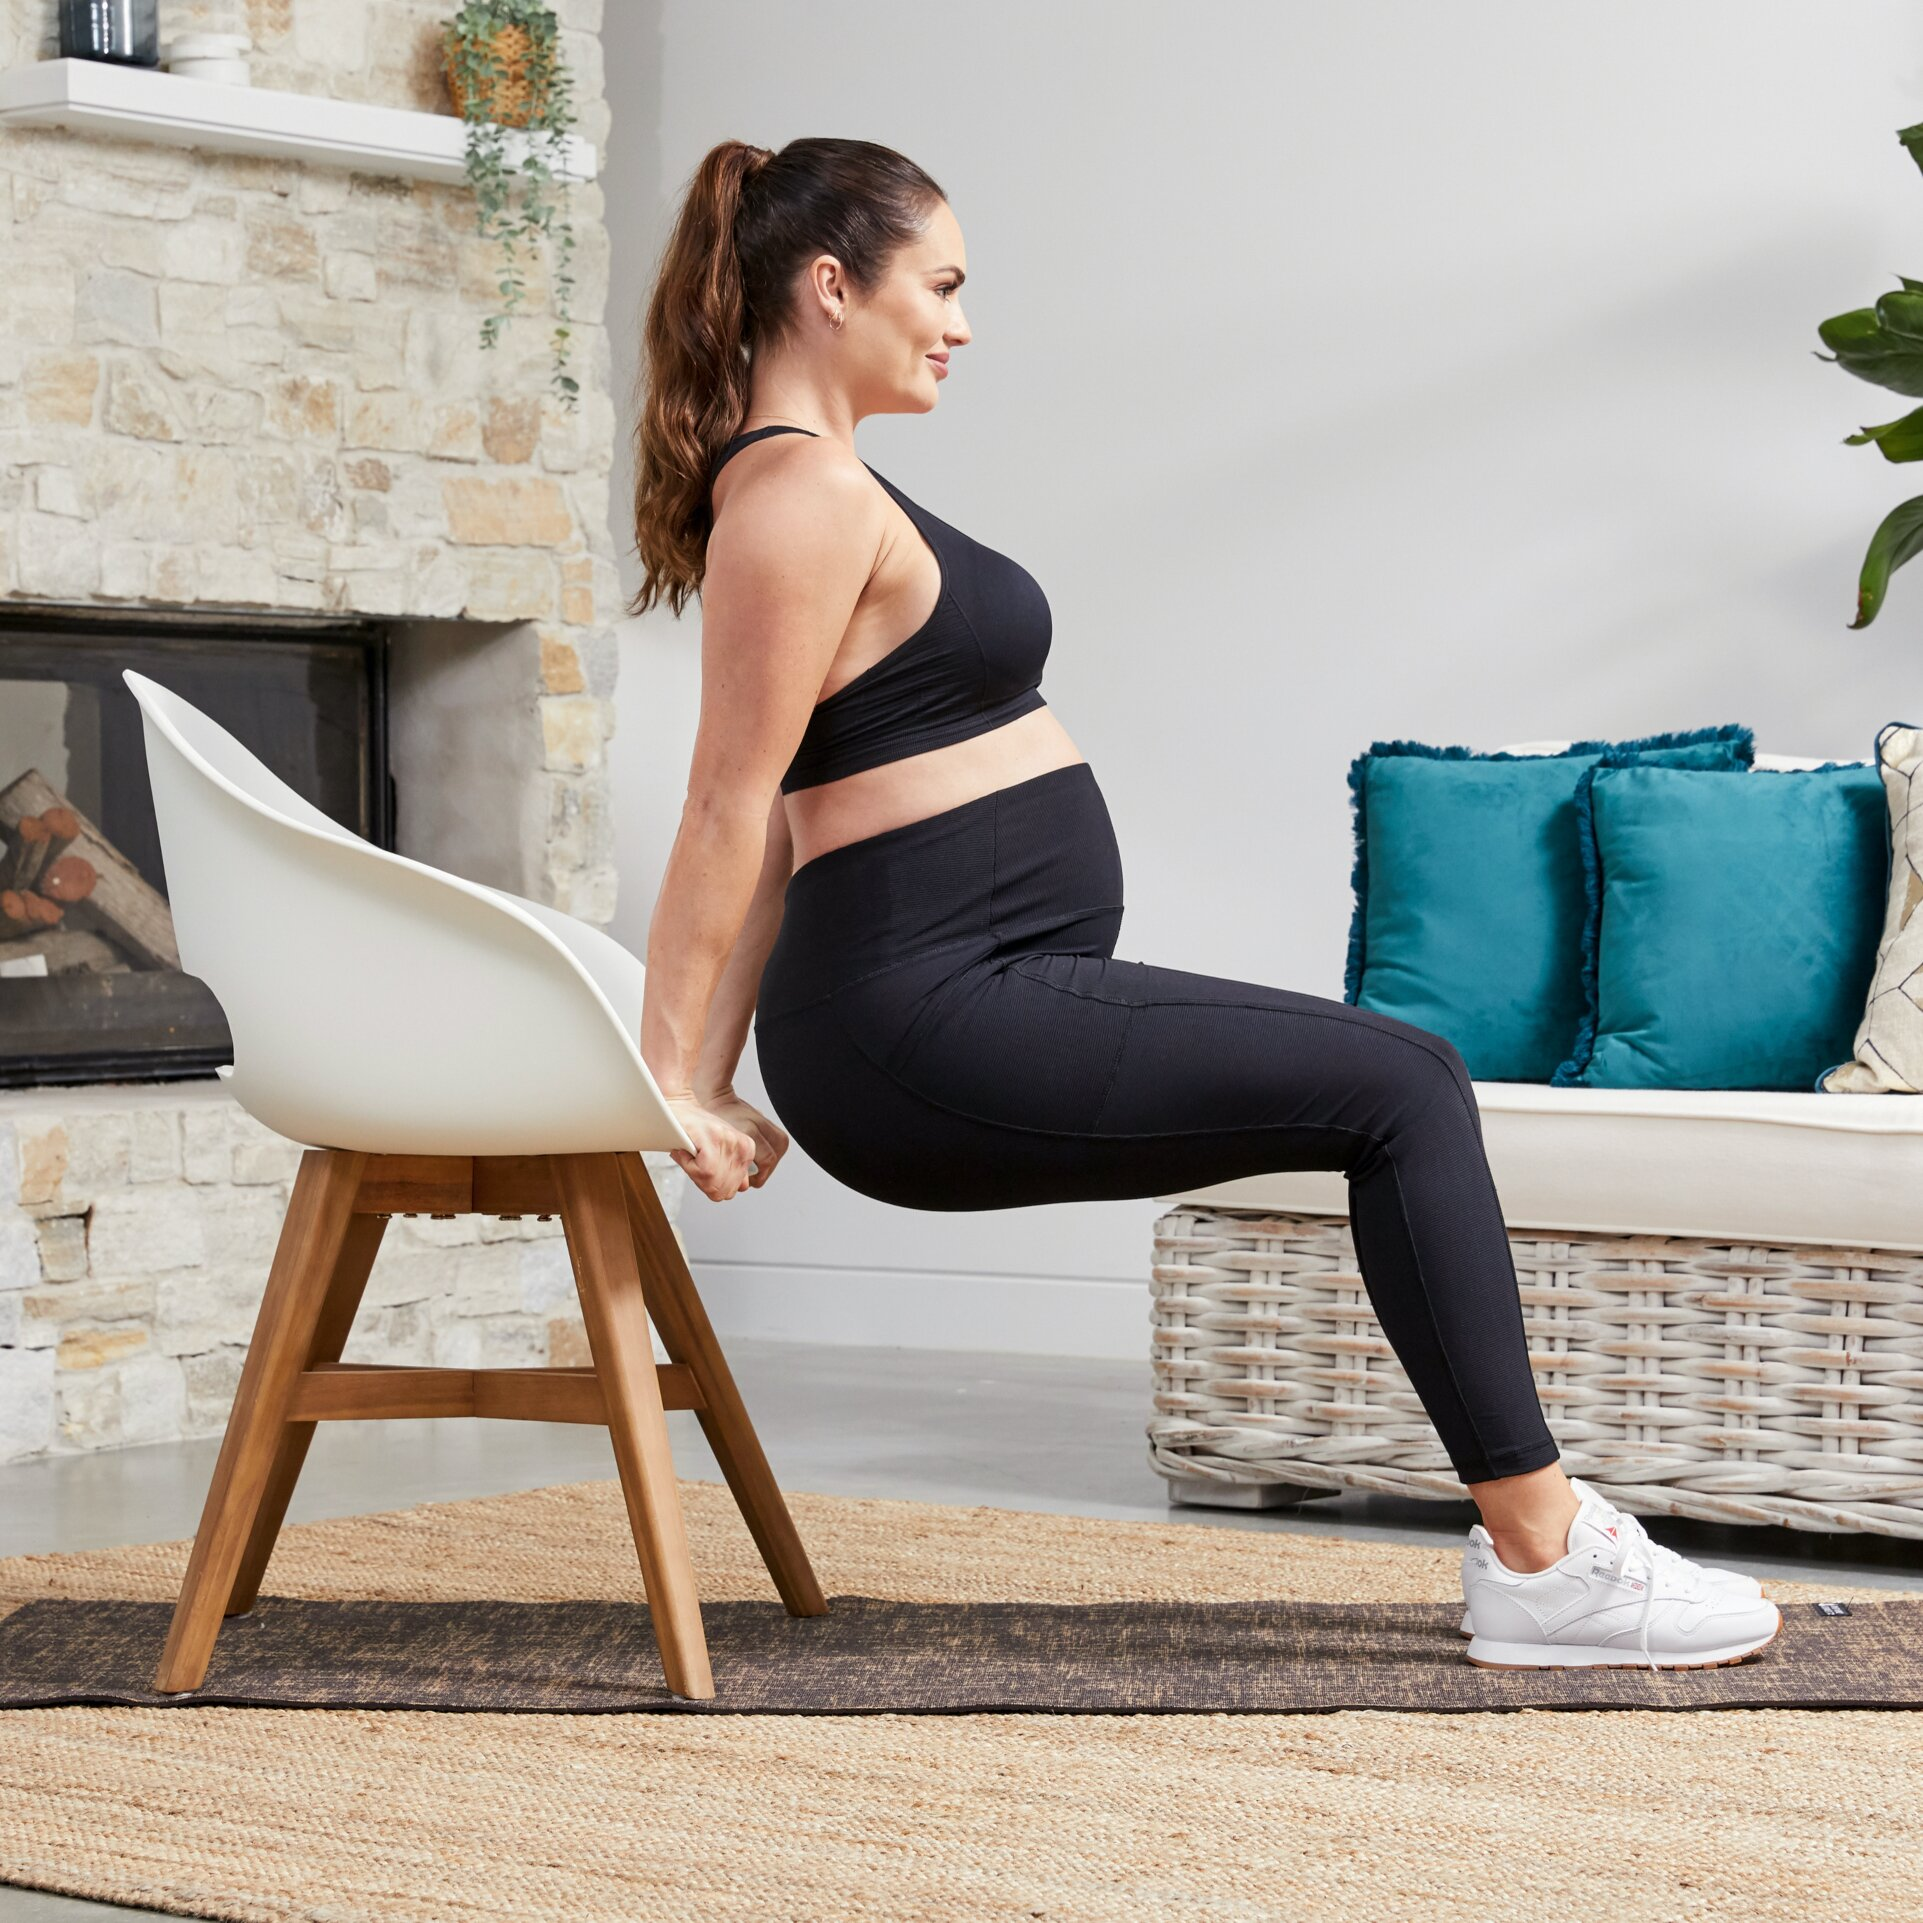 Healthy Exercise During Pregnancy